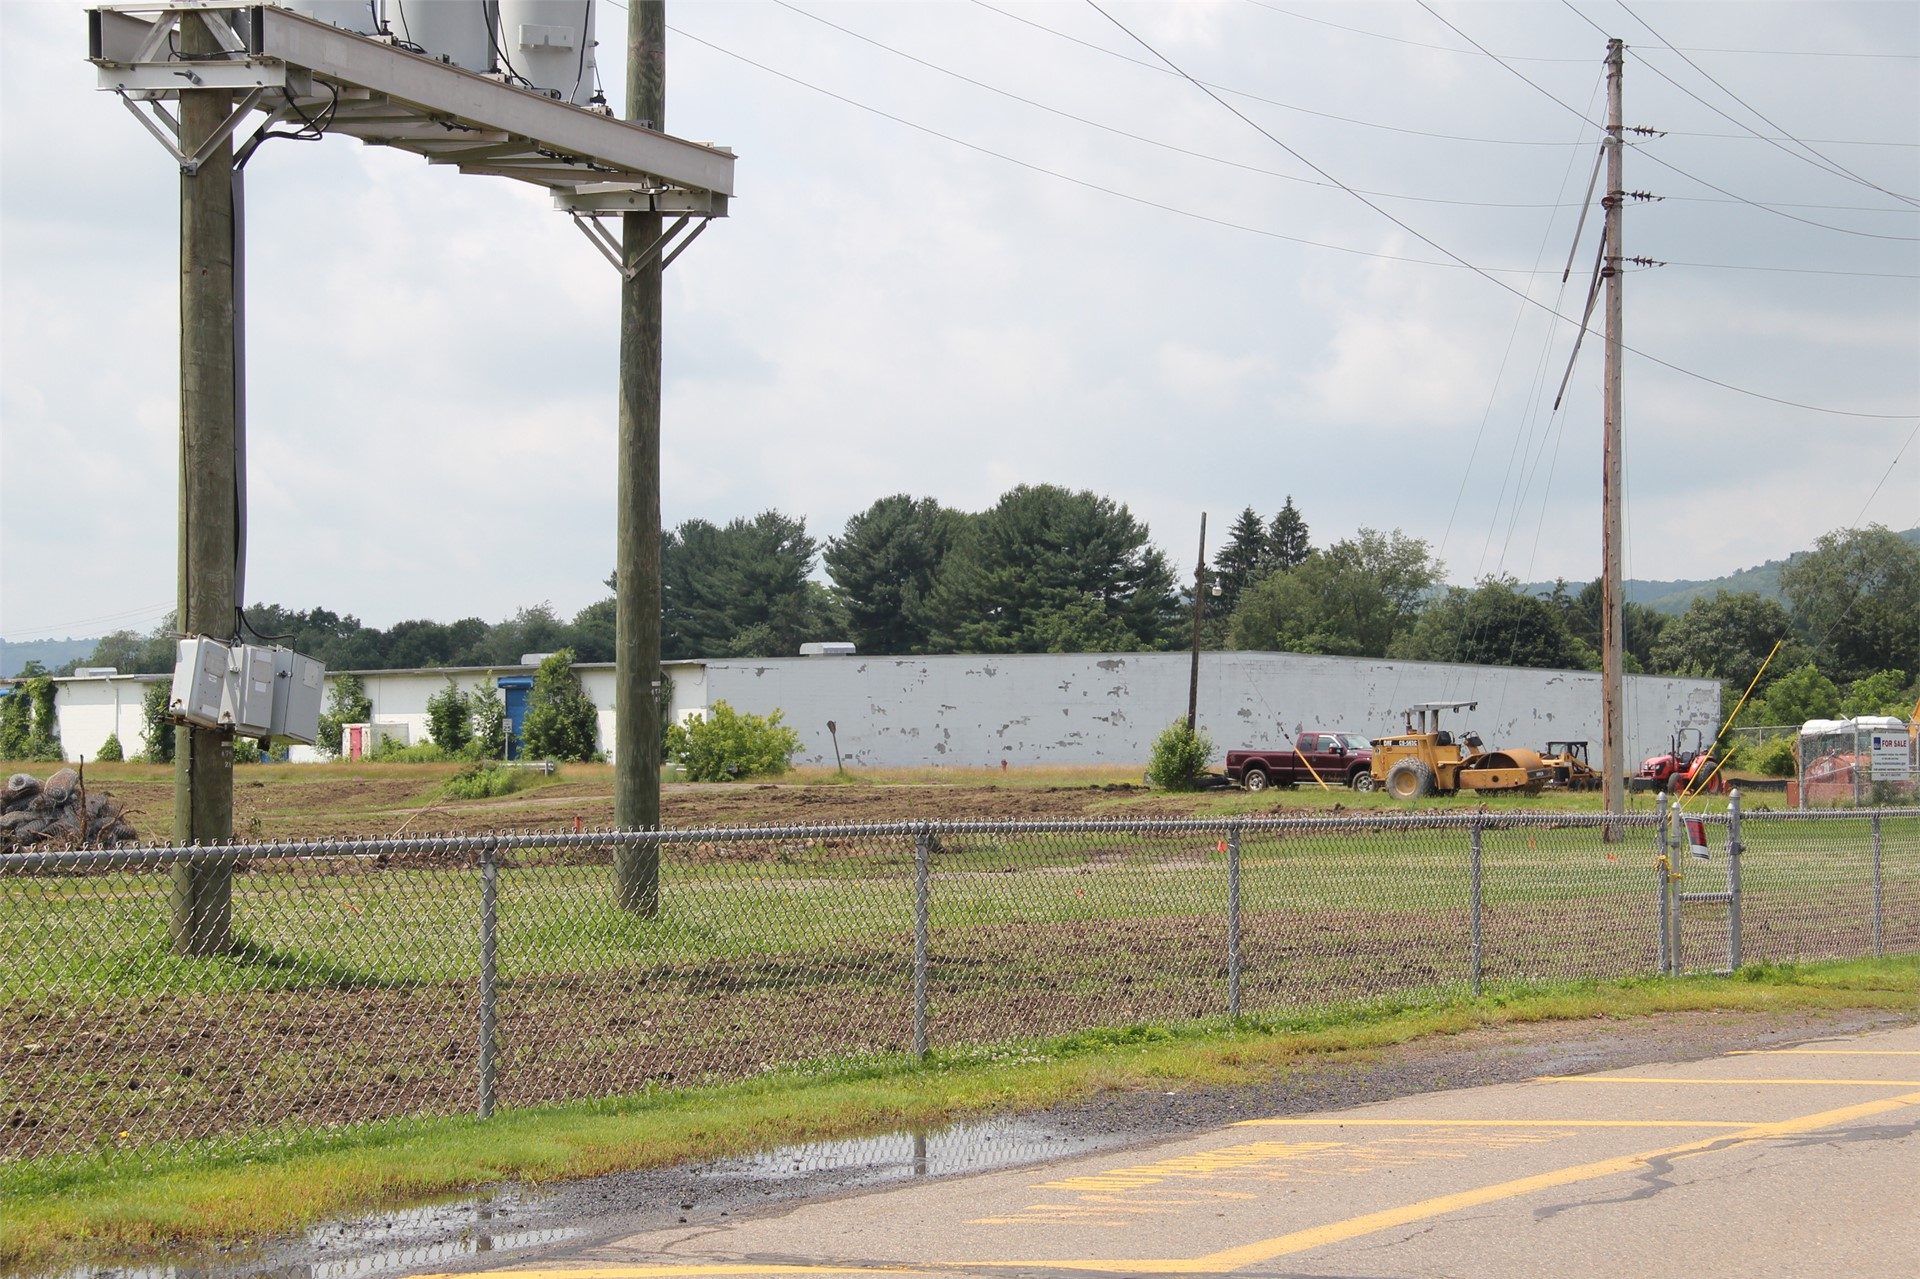 wide shot of construction scene outdoors at field